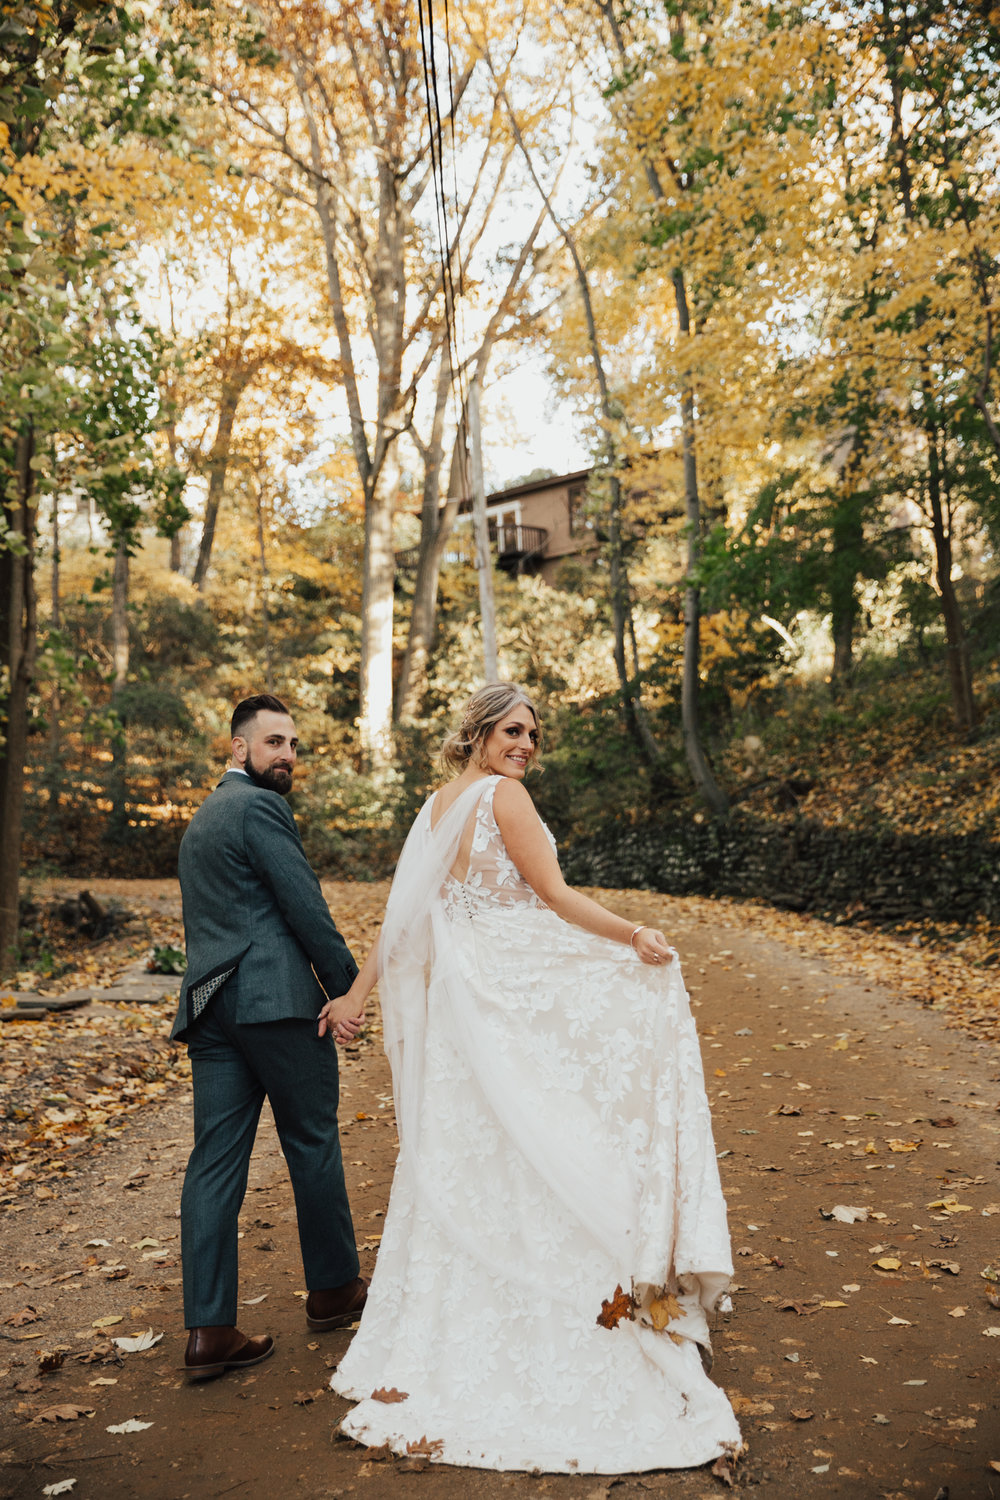 Bhldn wedding dress NYC